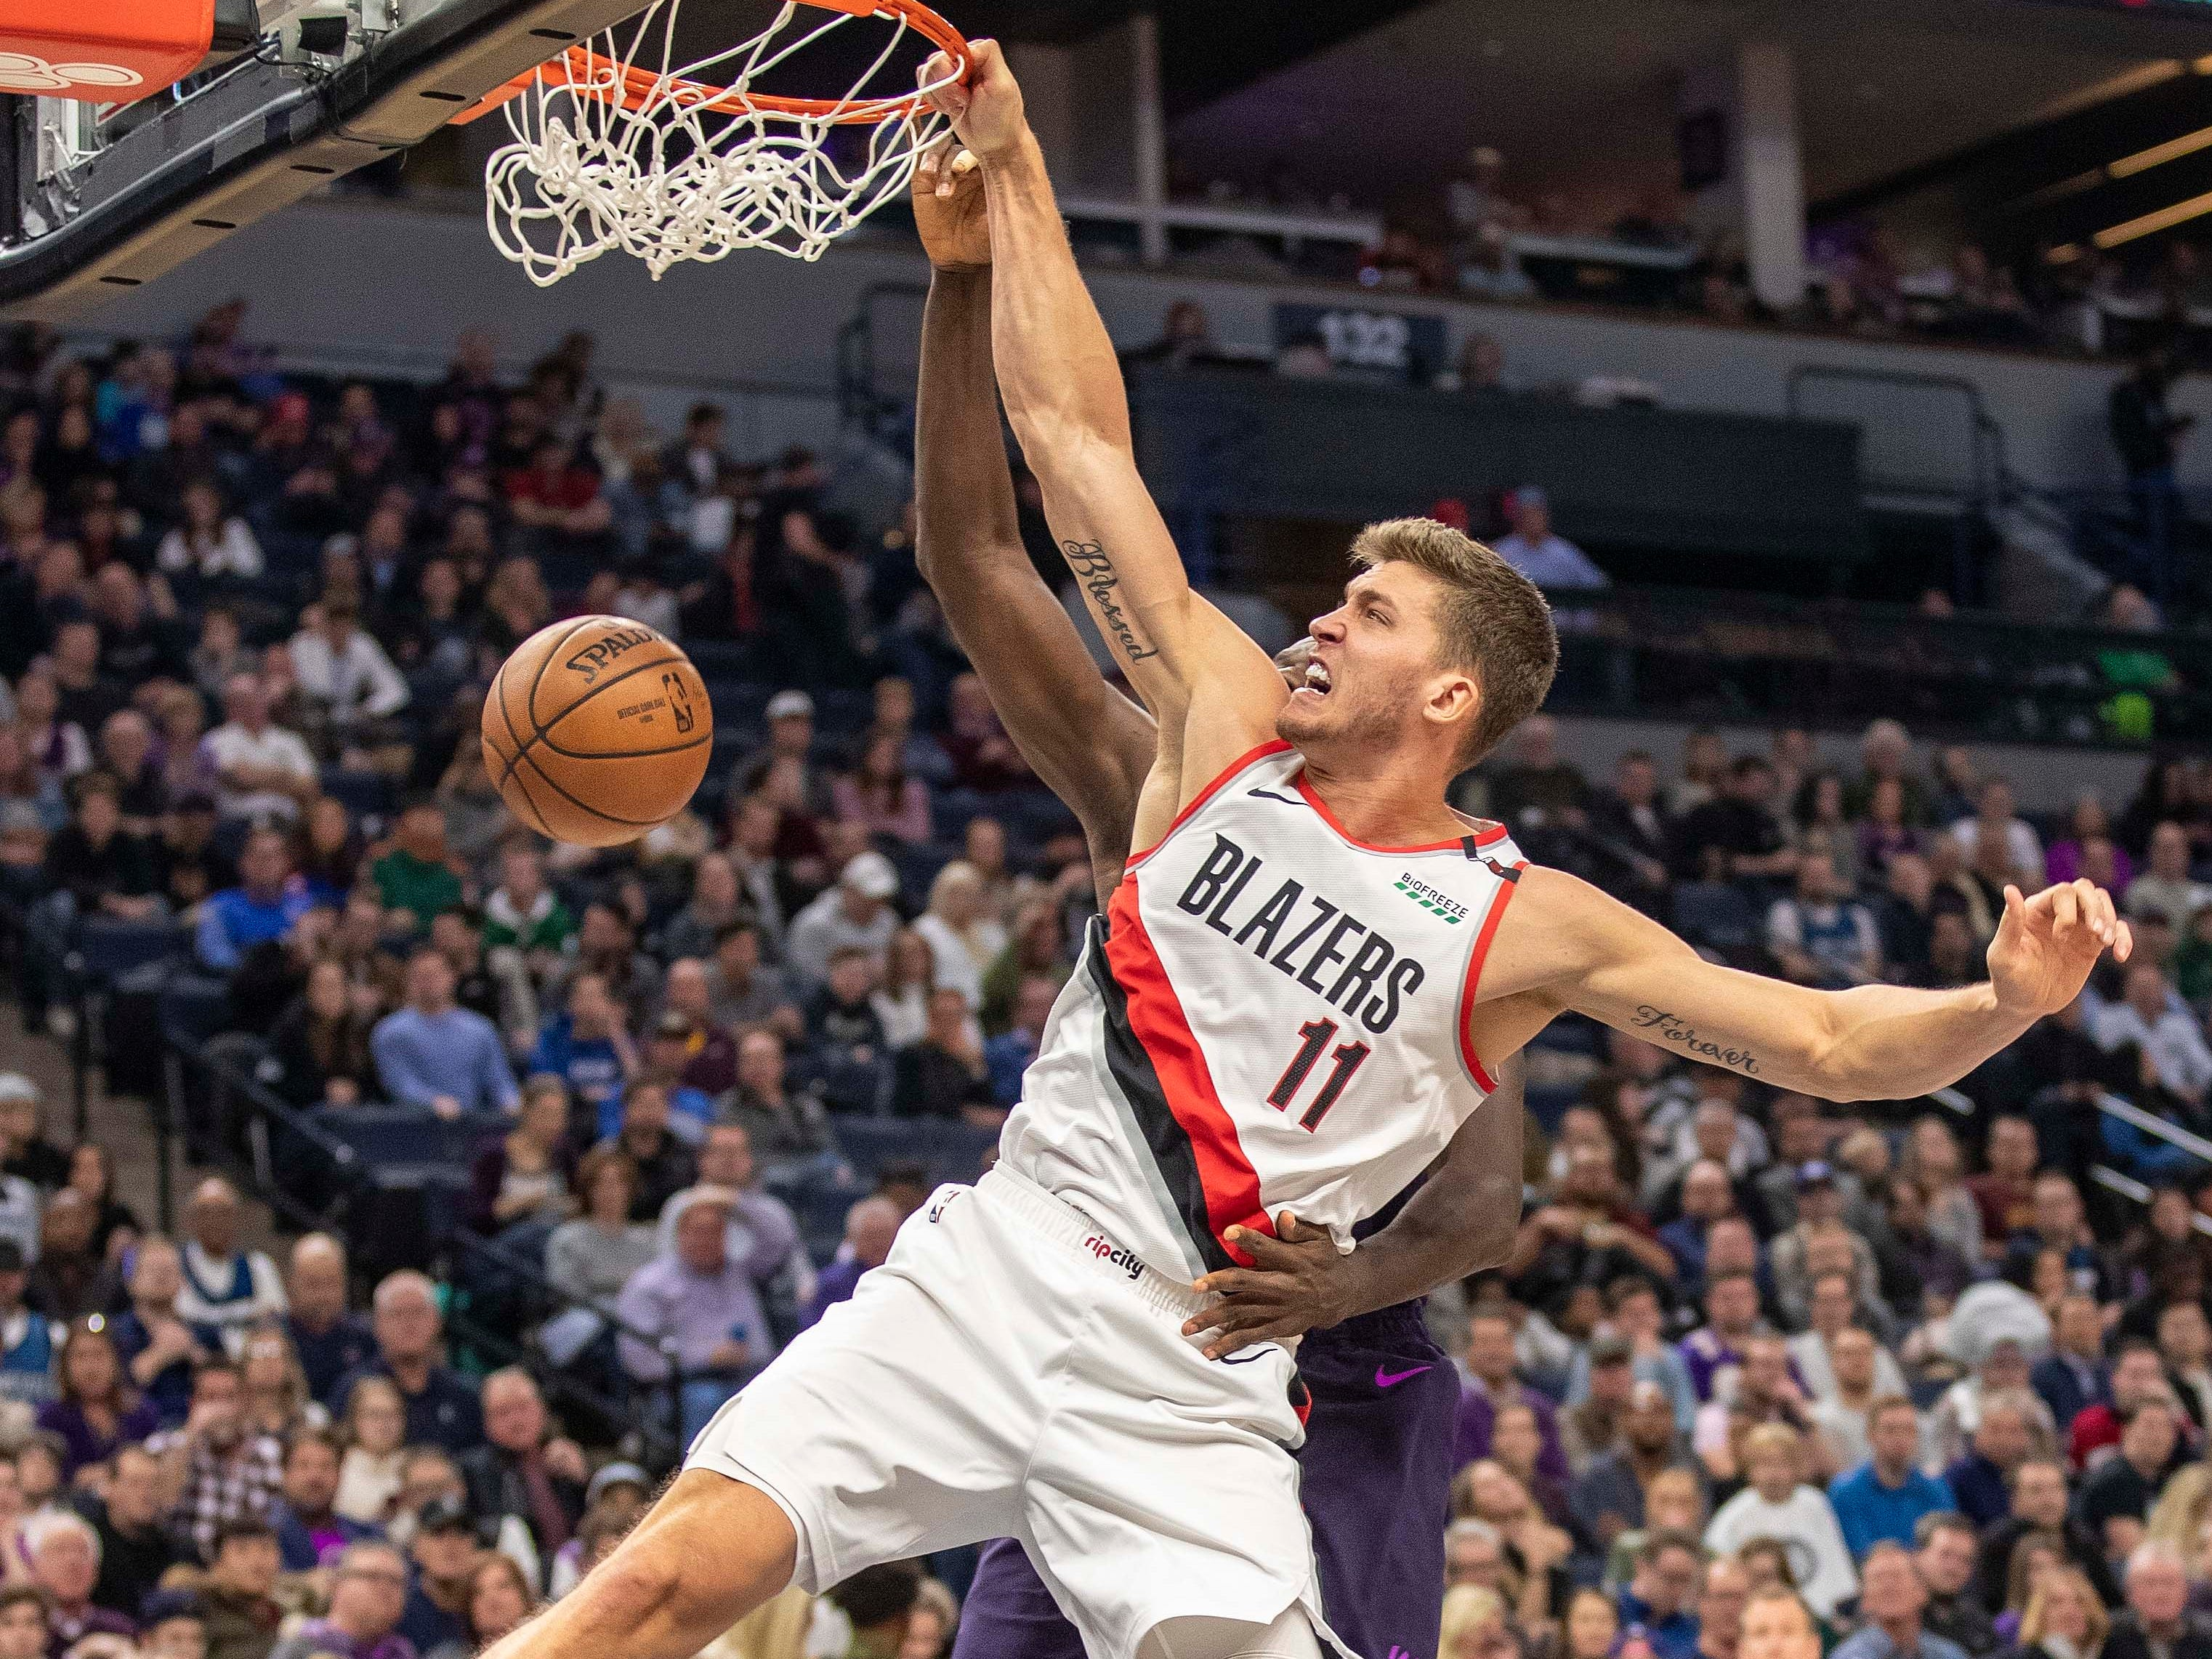 Nov. 16: Blazers forward Meyers Leonard (11) throws down a one-handed slam against Timberwolves center Gorgui Dieng (5) during the second half in Minneapolis.